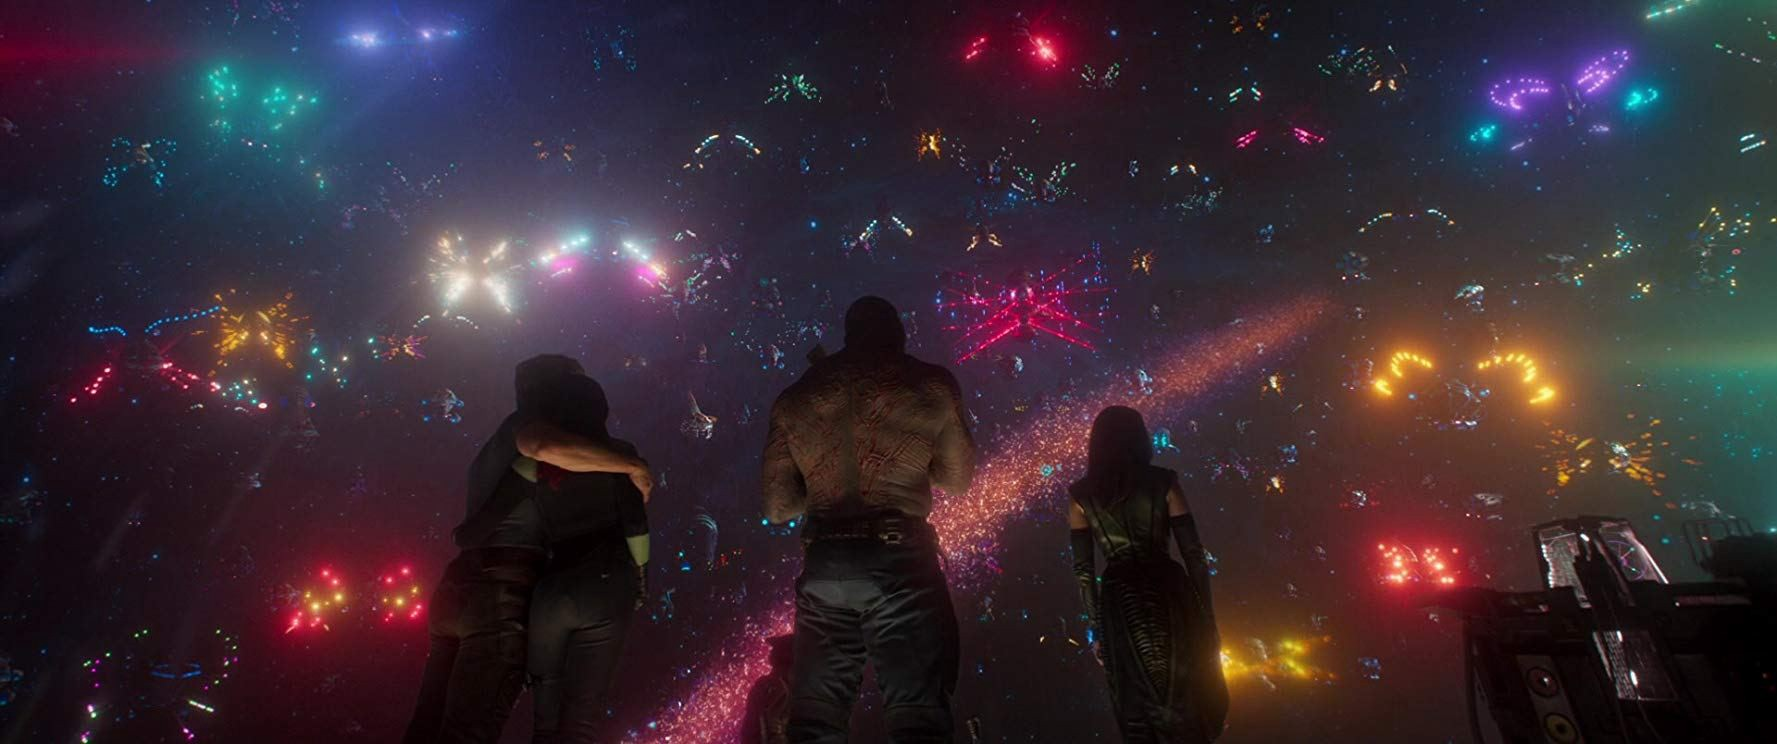 Screenshot from the ending of 'Guardians of the Galaxy Vol. 2'